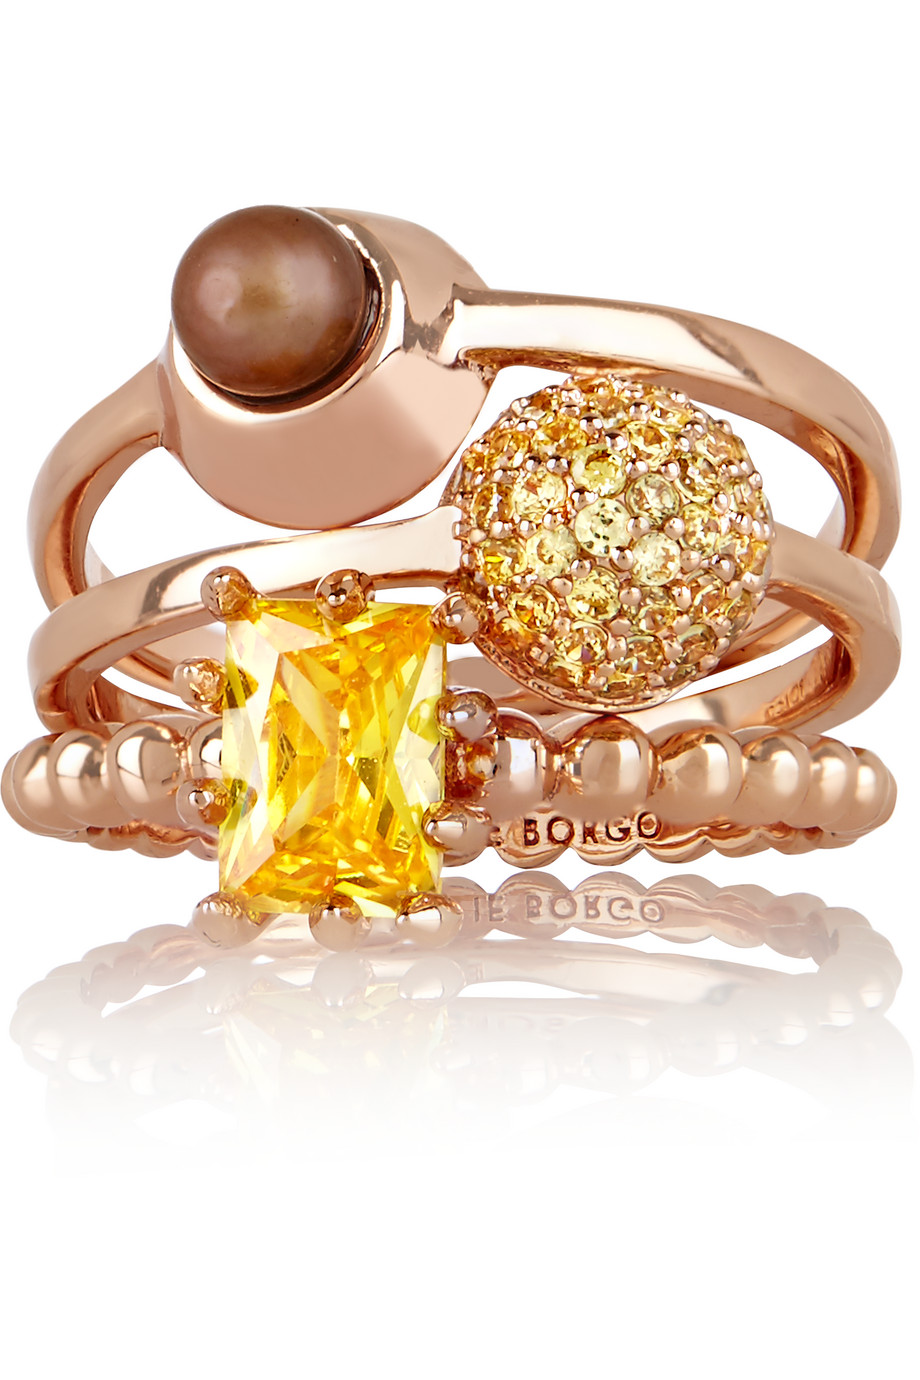 Eddie Borgo Collage Set of Three Rose Gold-Plated, Crystal and Pearl Rings, Women's